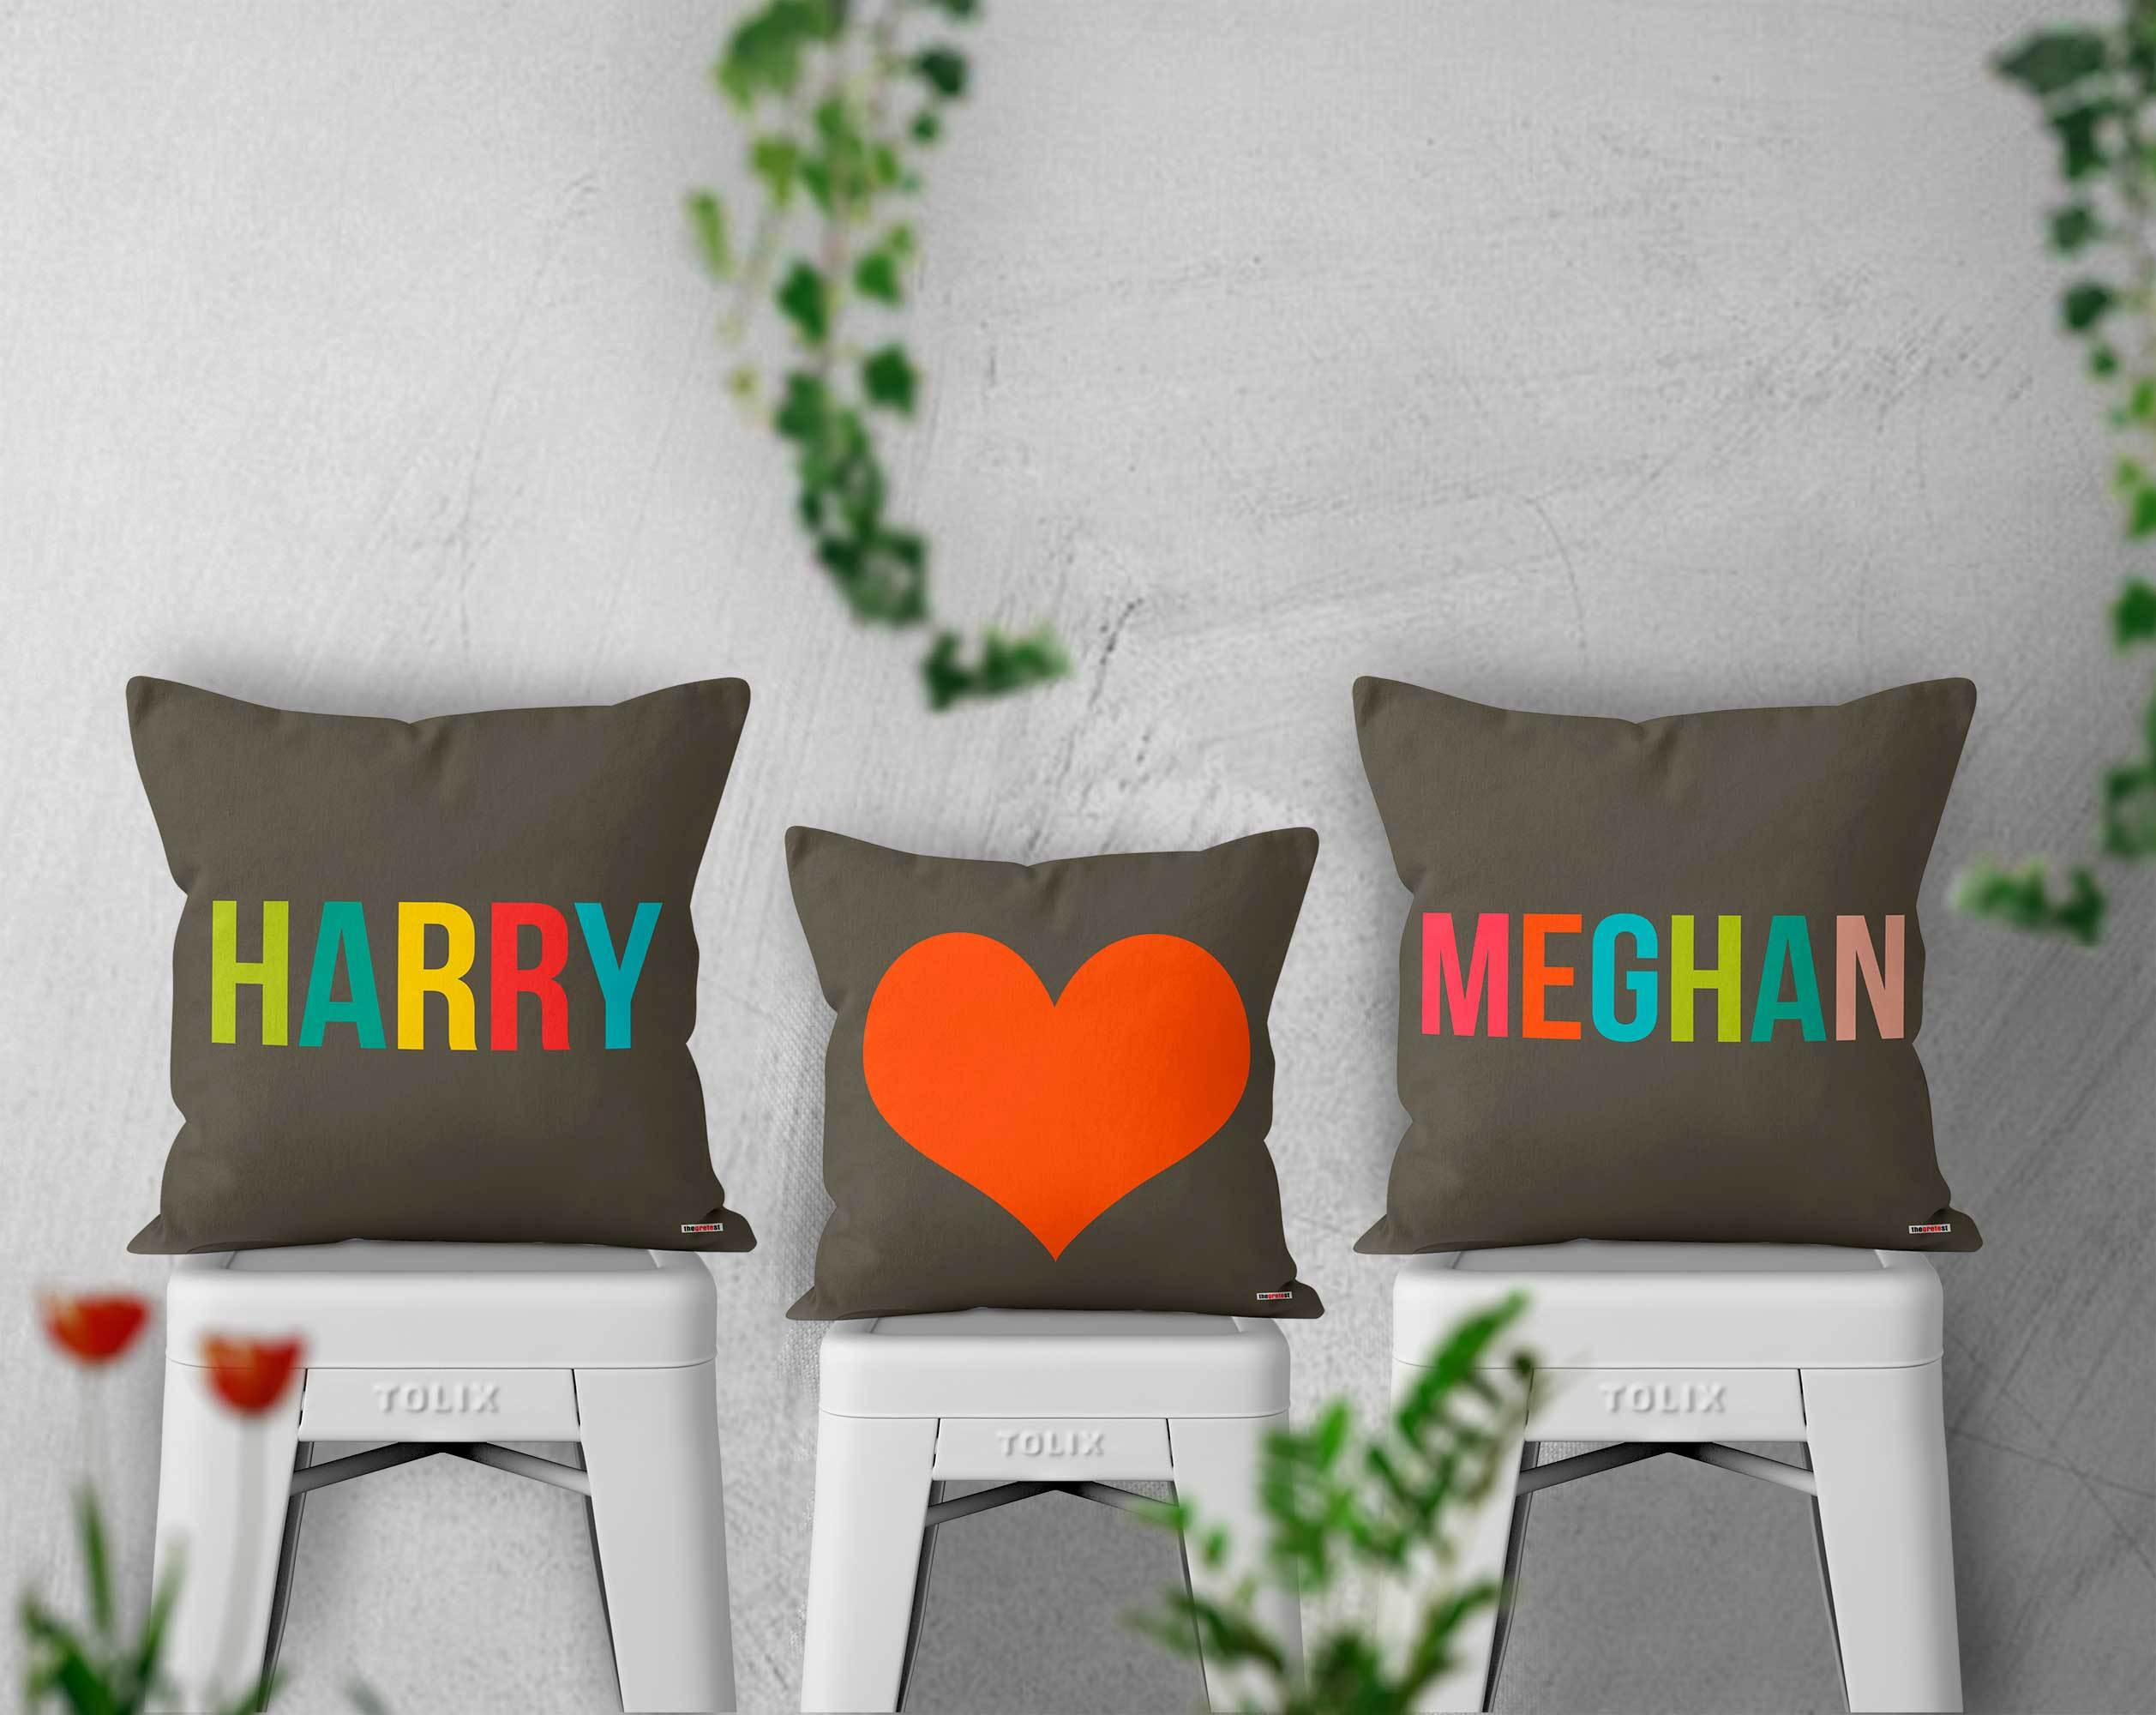 personalized pillows - romantic pillows by The Gretest